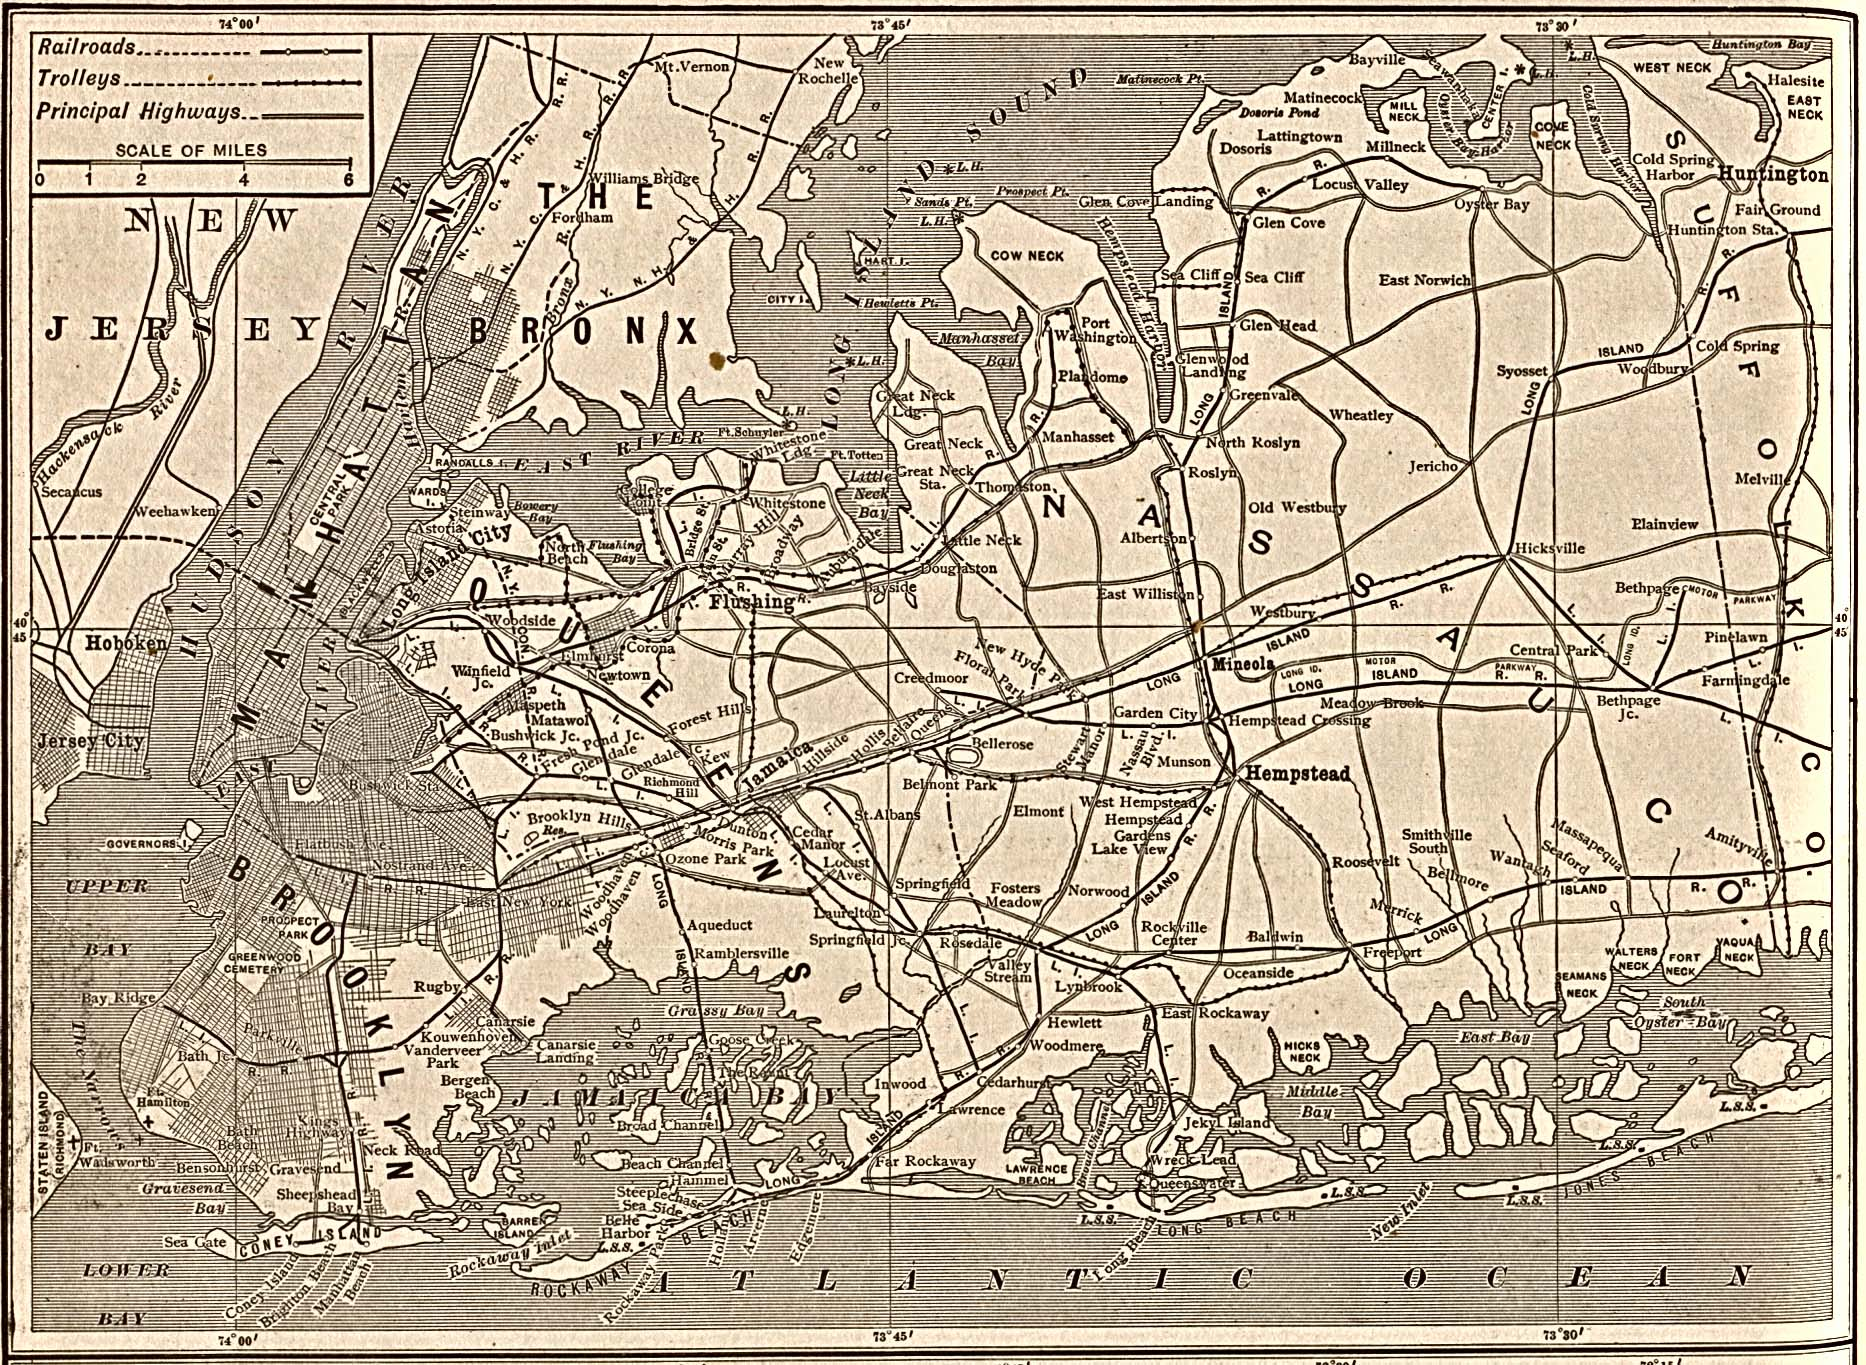 Free Printable Street Map Of New York City You Can See A Map Of - New york map road